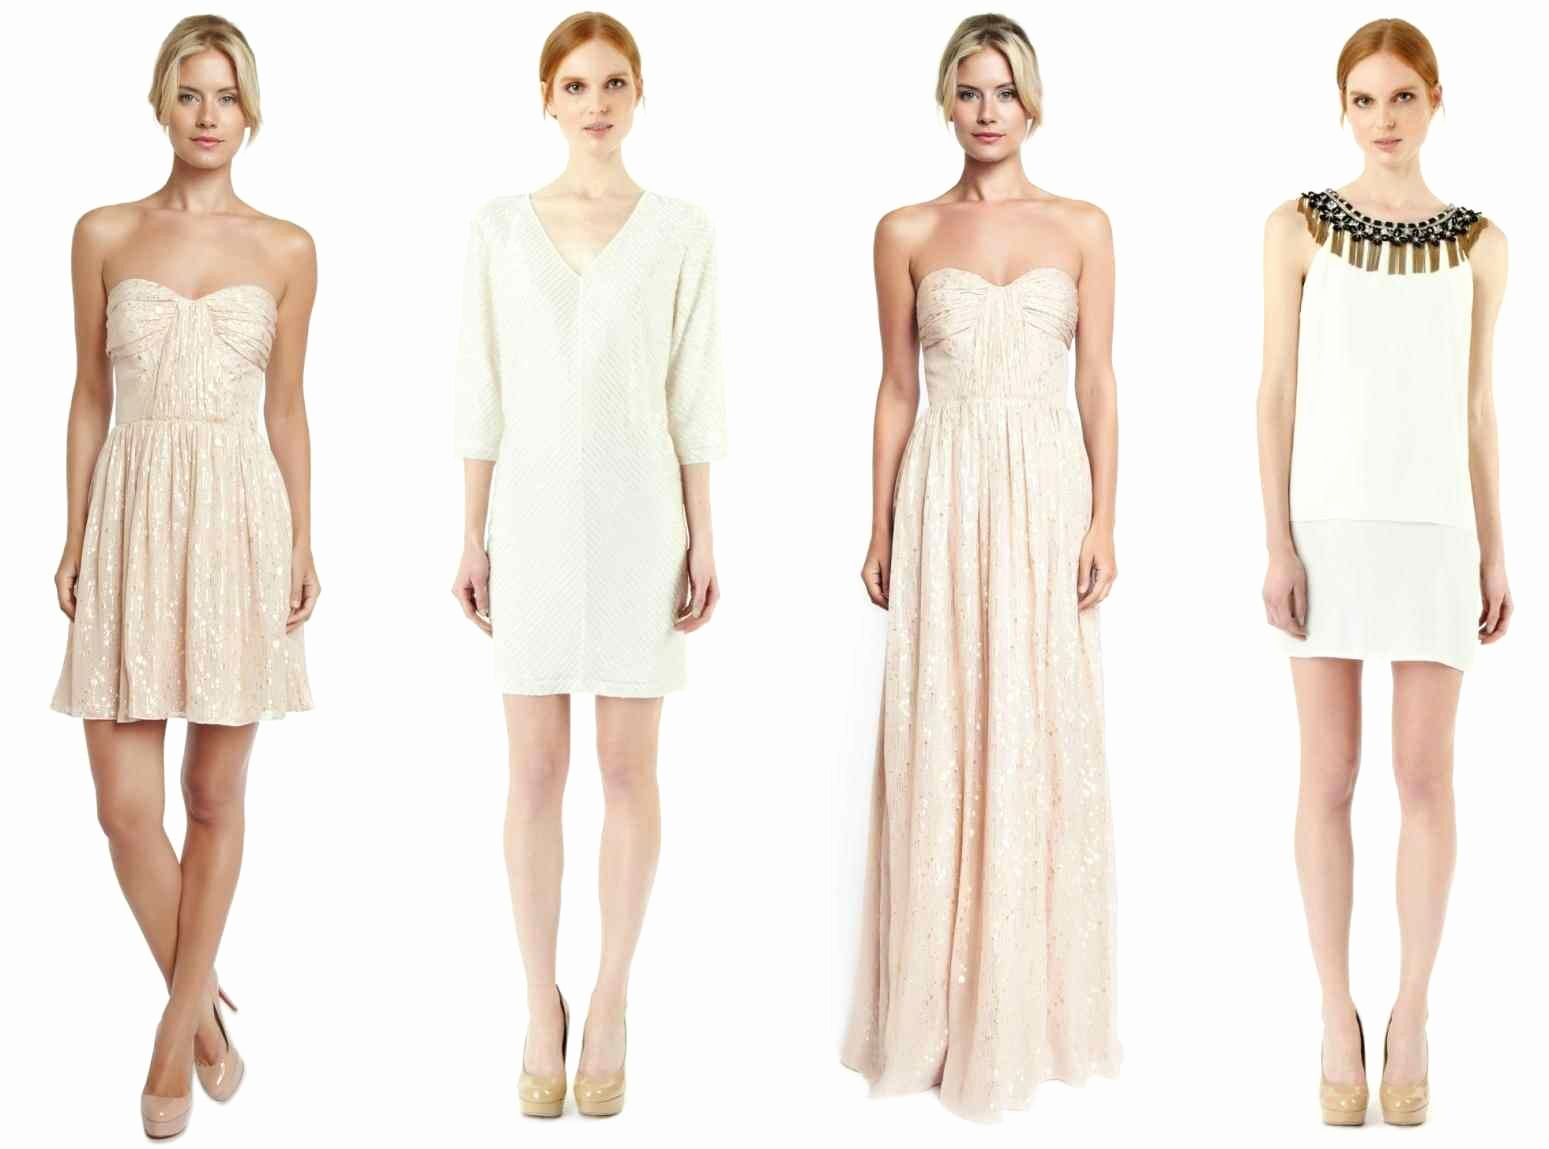 Dresses to Attend a Wedding